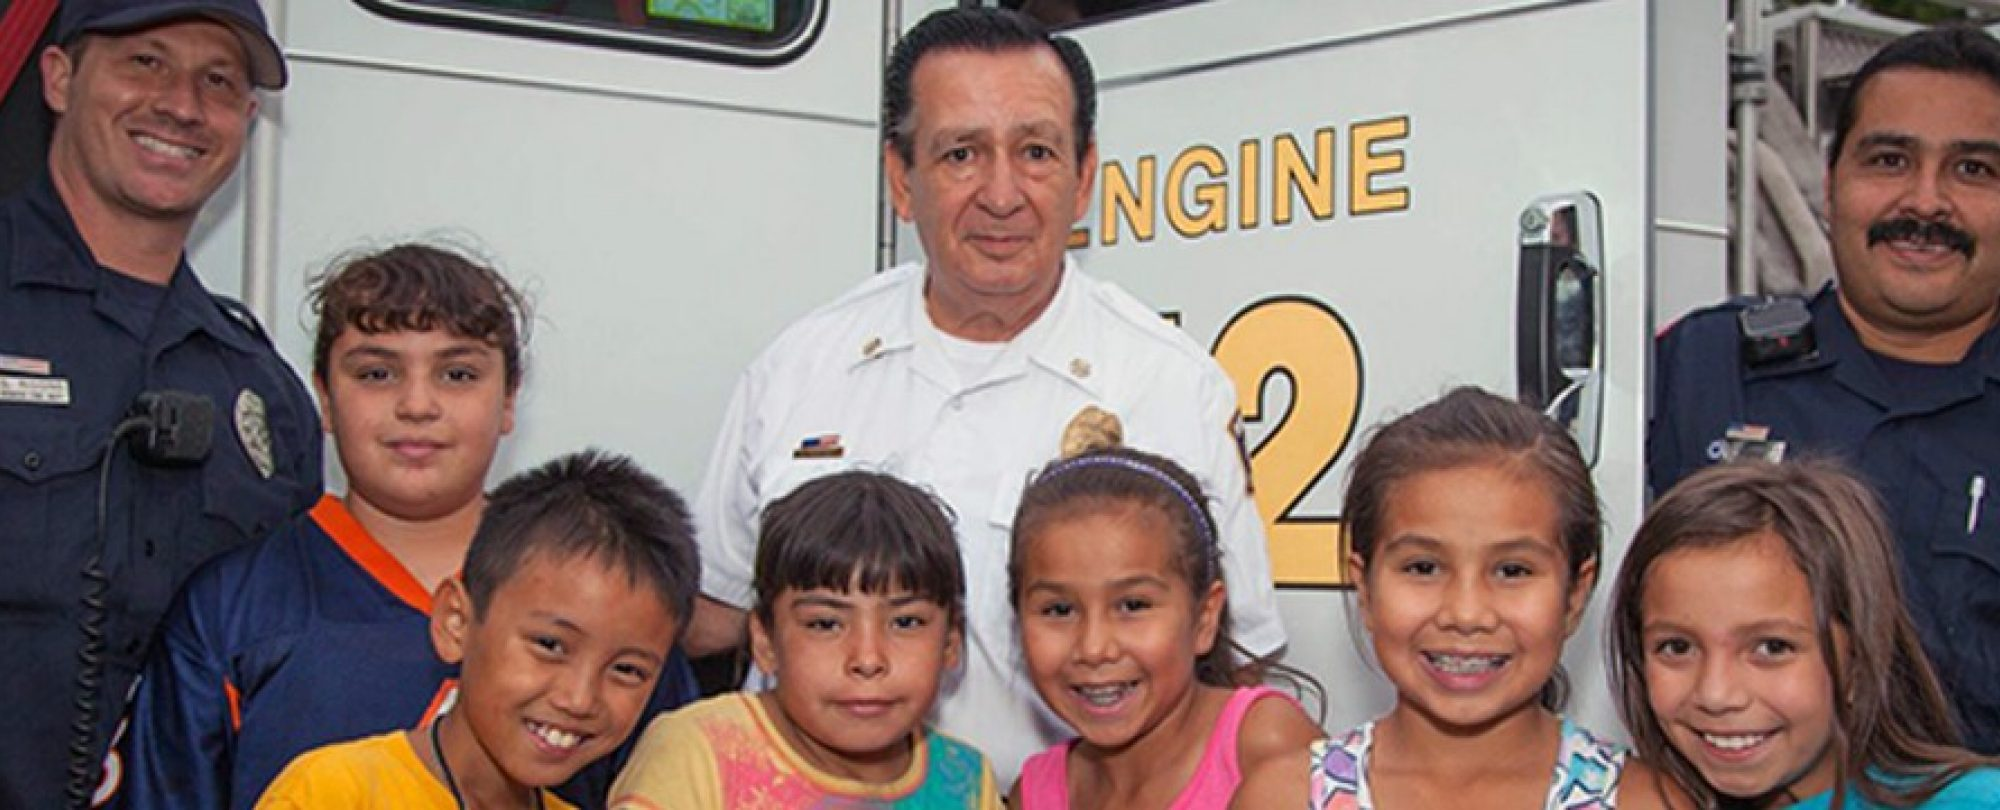 group of children posing with firefighters